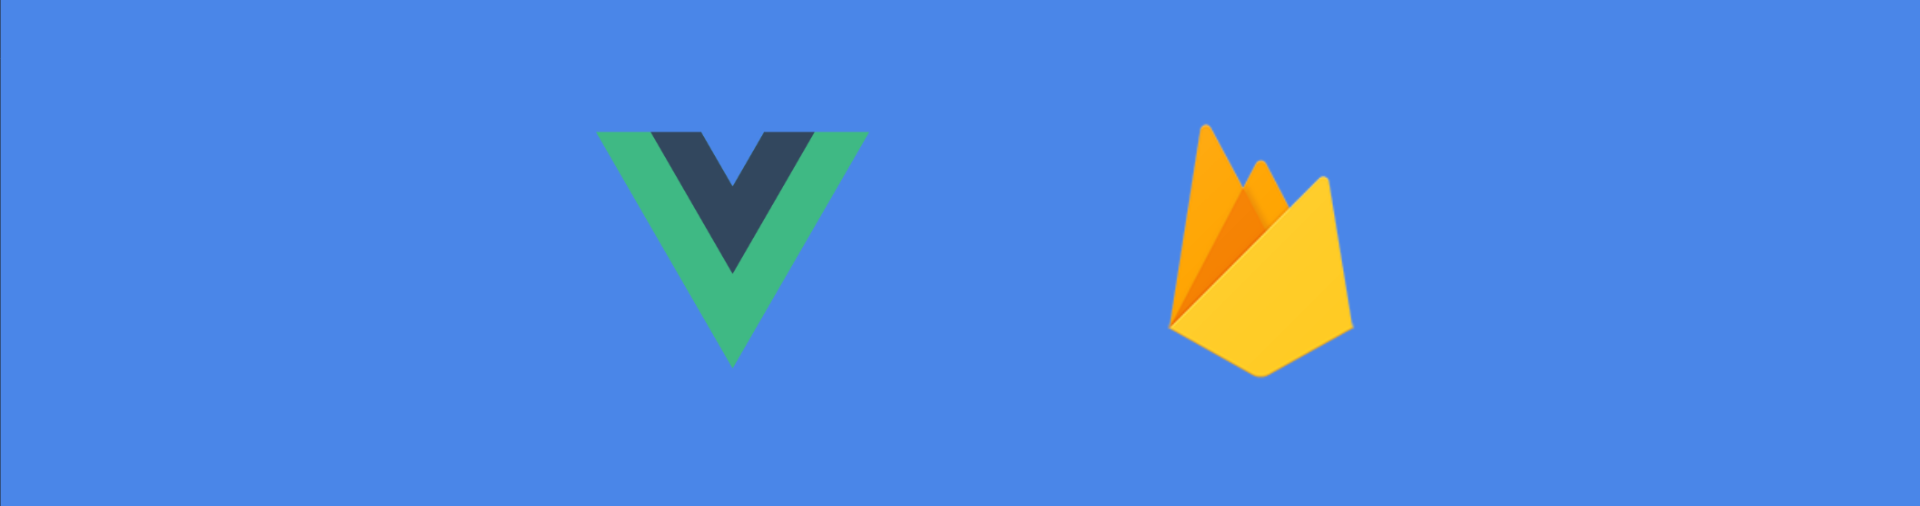 Build a Vue App with Firebase Authentication and Database